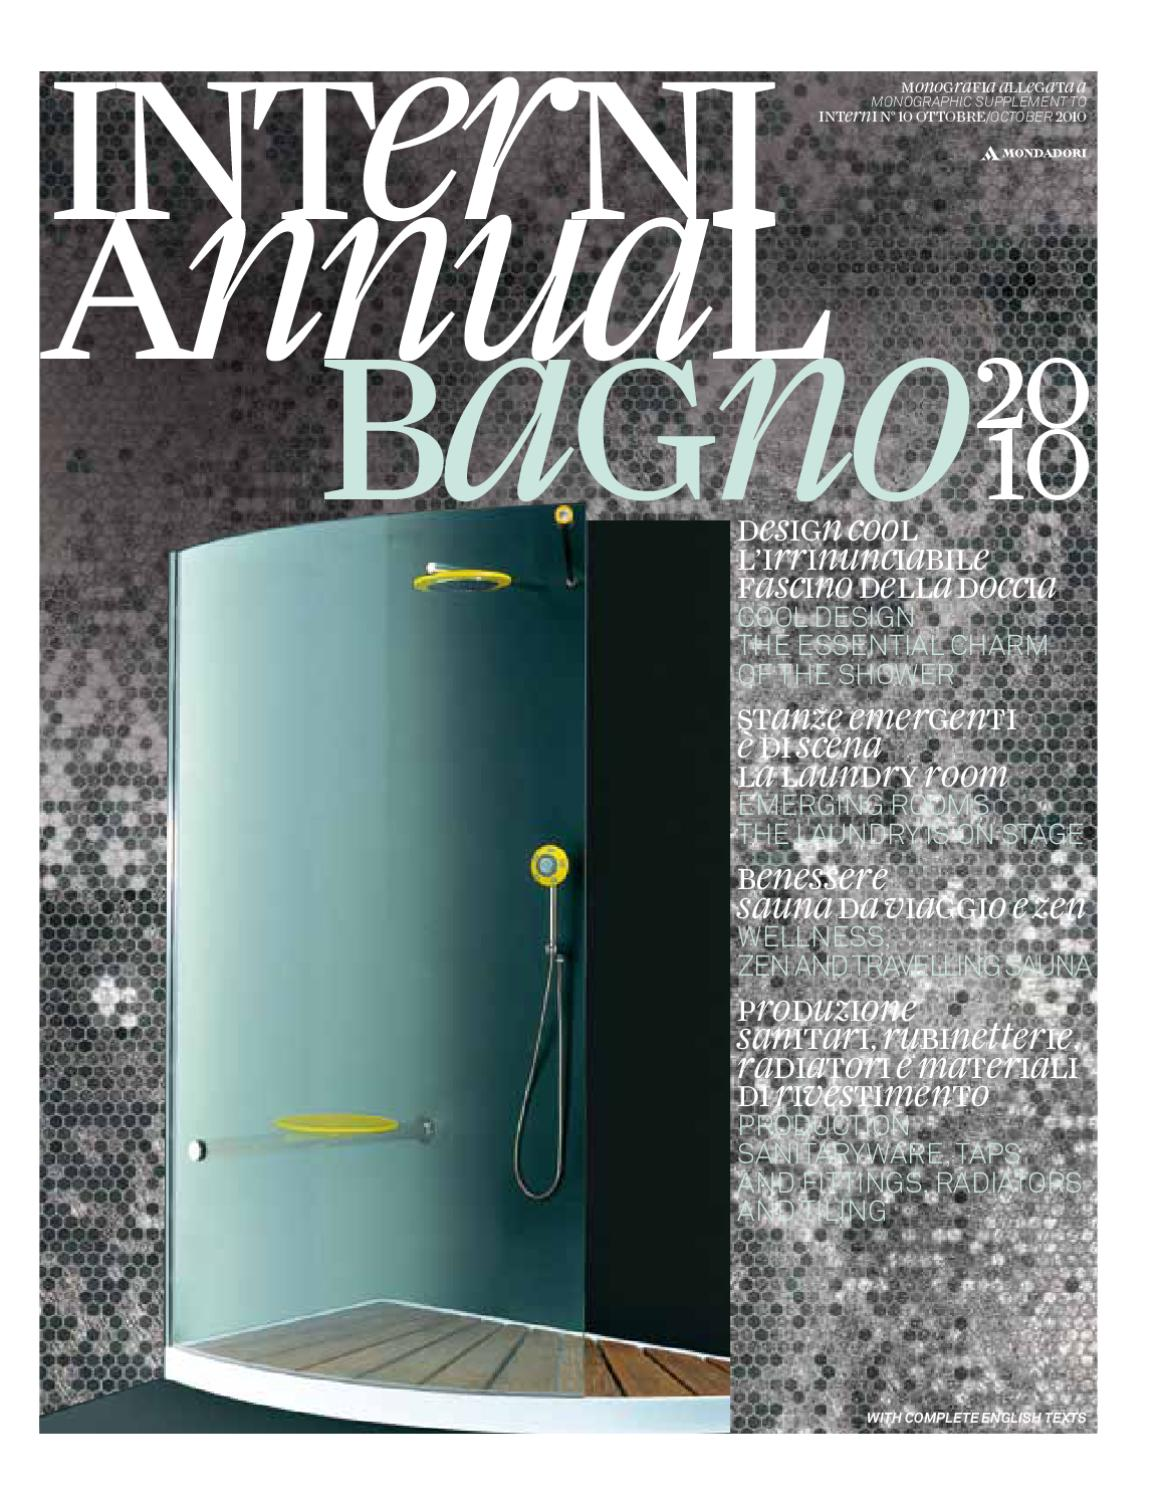 Interni Annual Bagno 2010 by Interni Magazine - issuu